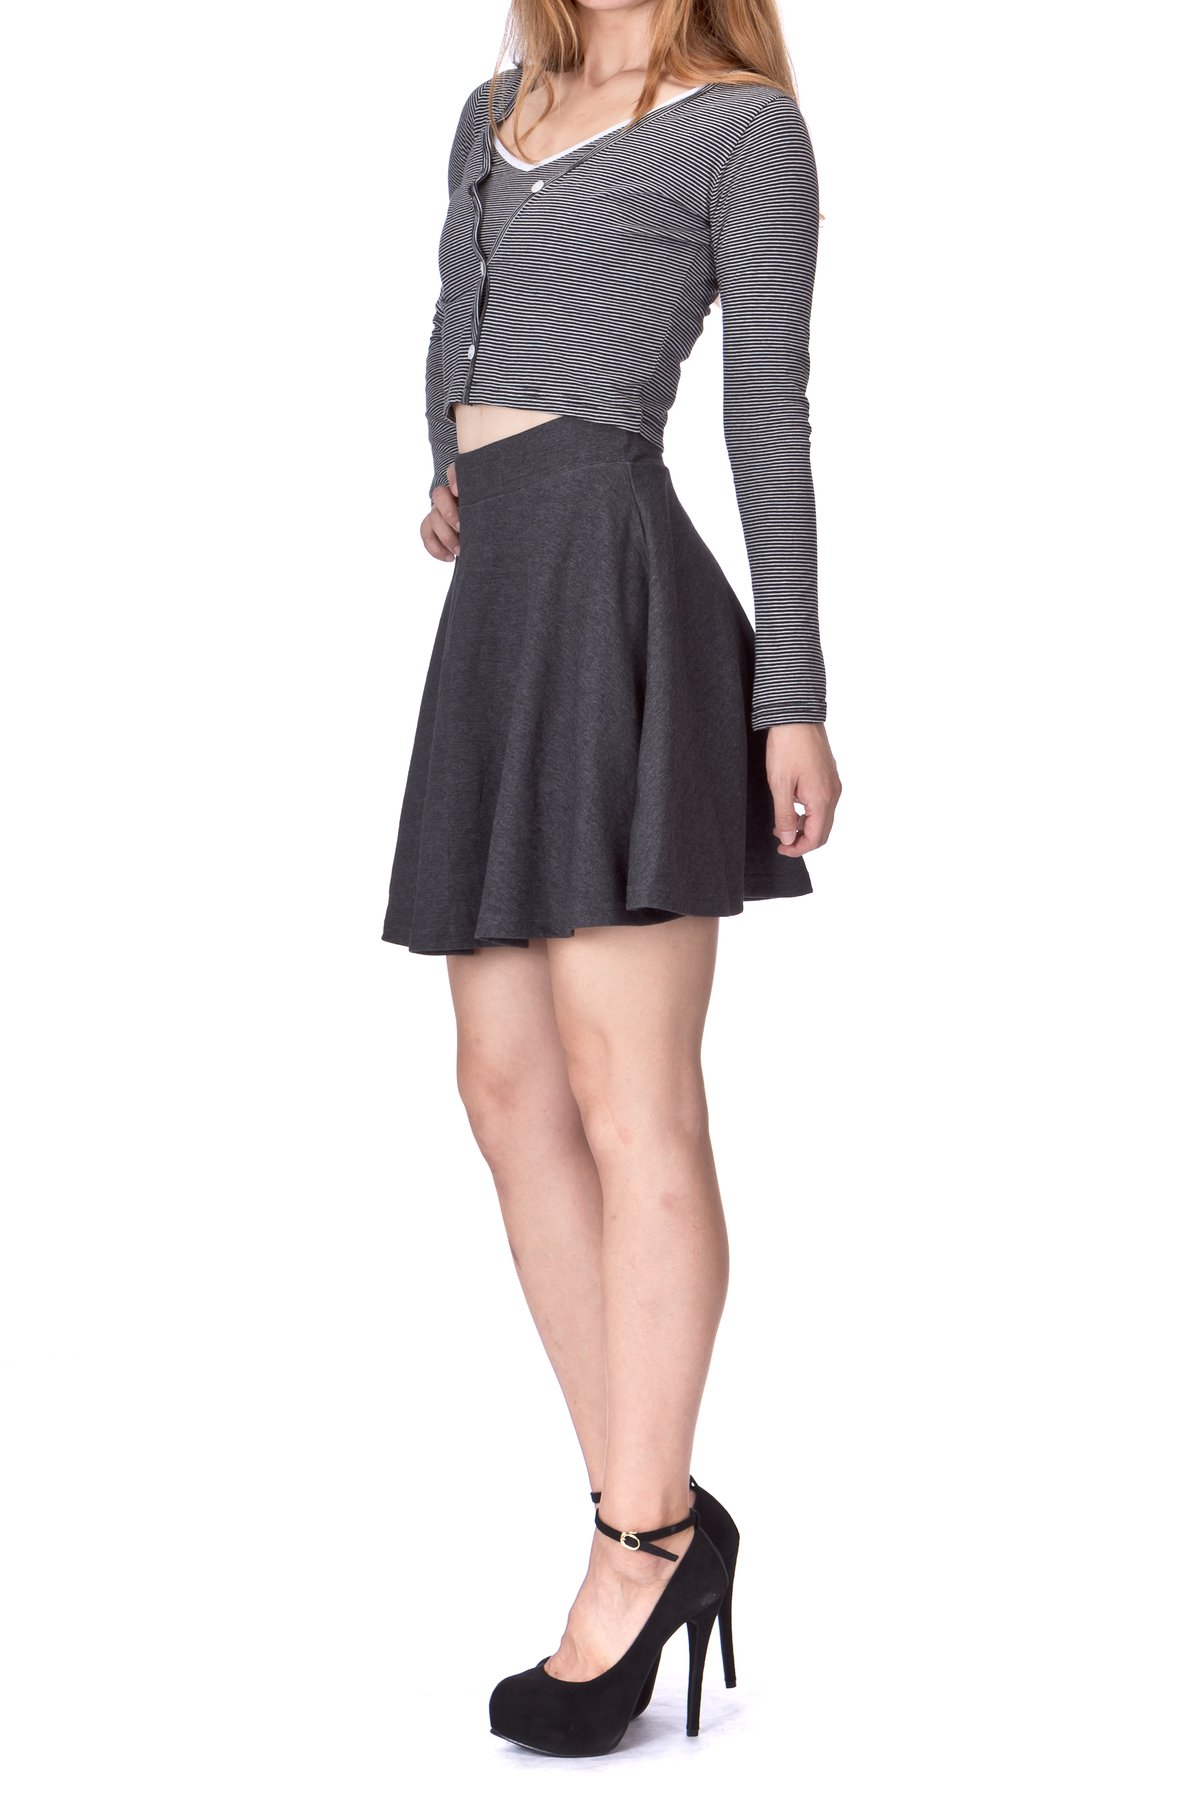 Basic Solid Stretchy Cotton High Waist A line Flared Skater Mini Skirt Charcoal 04